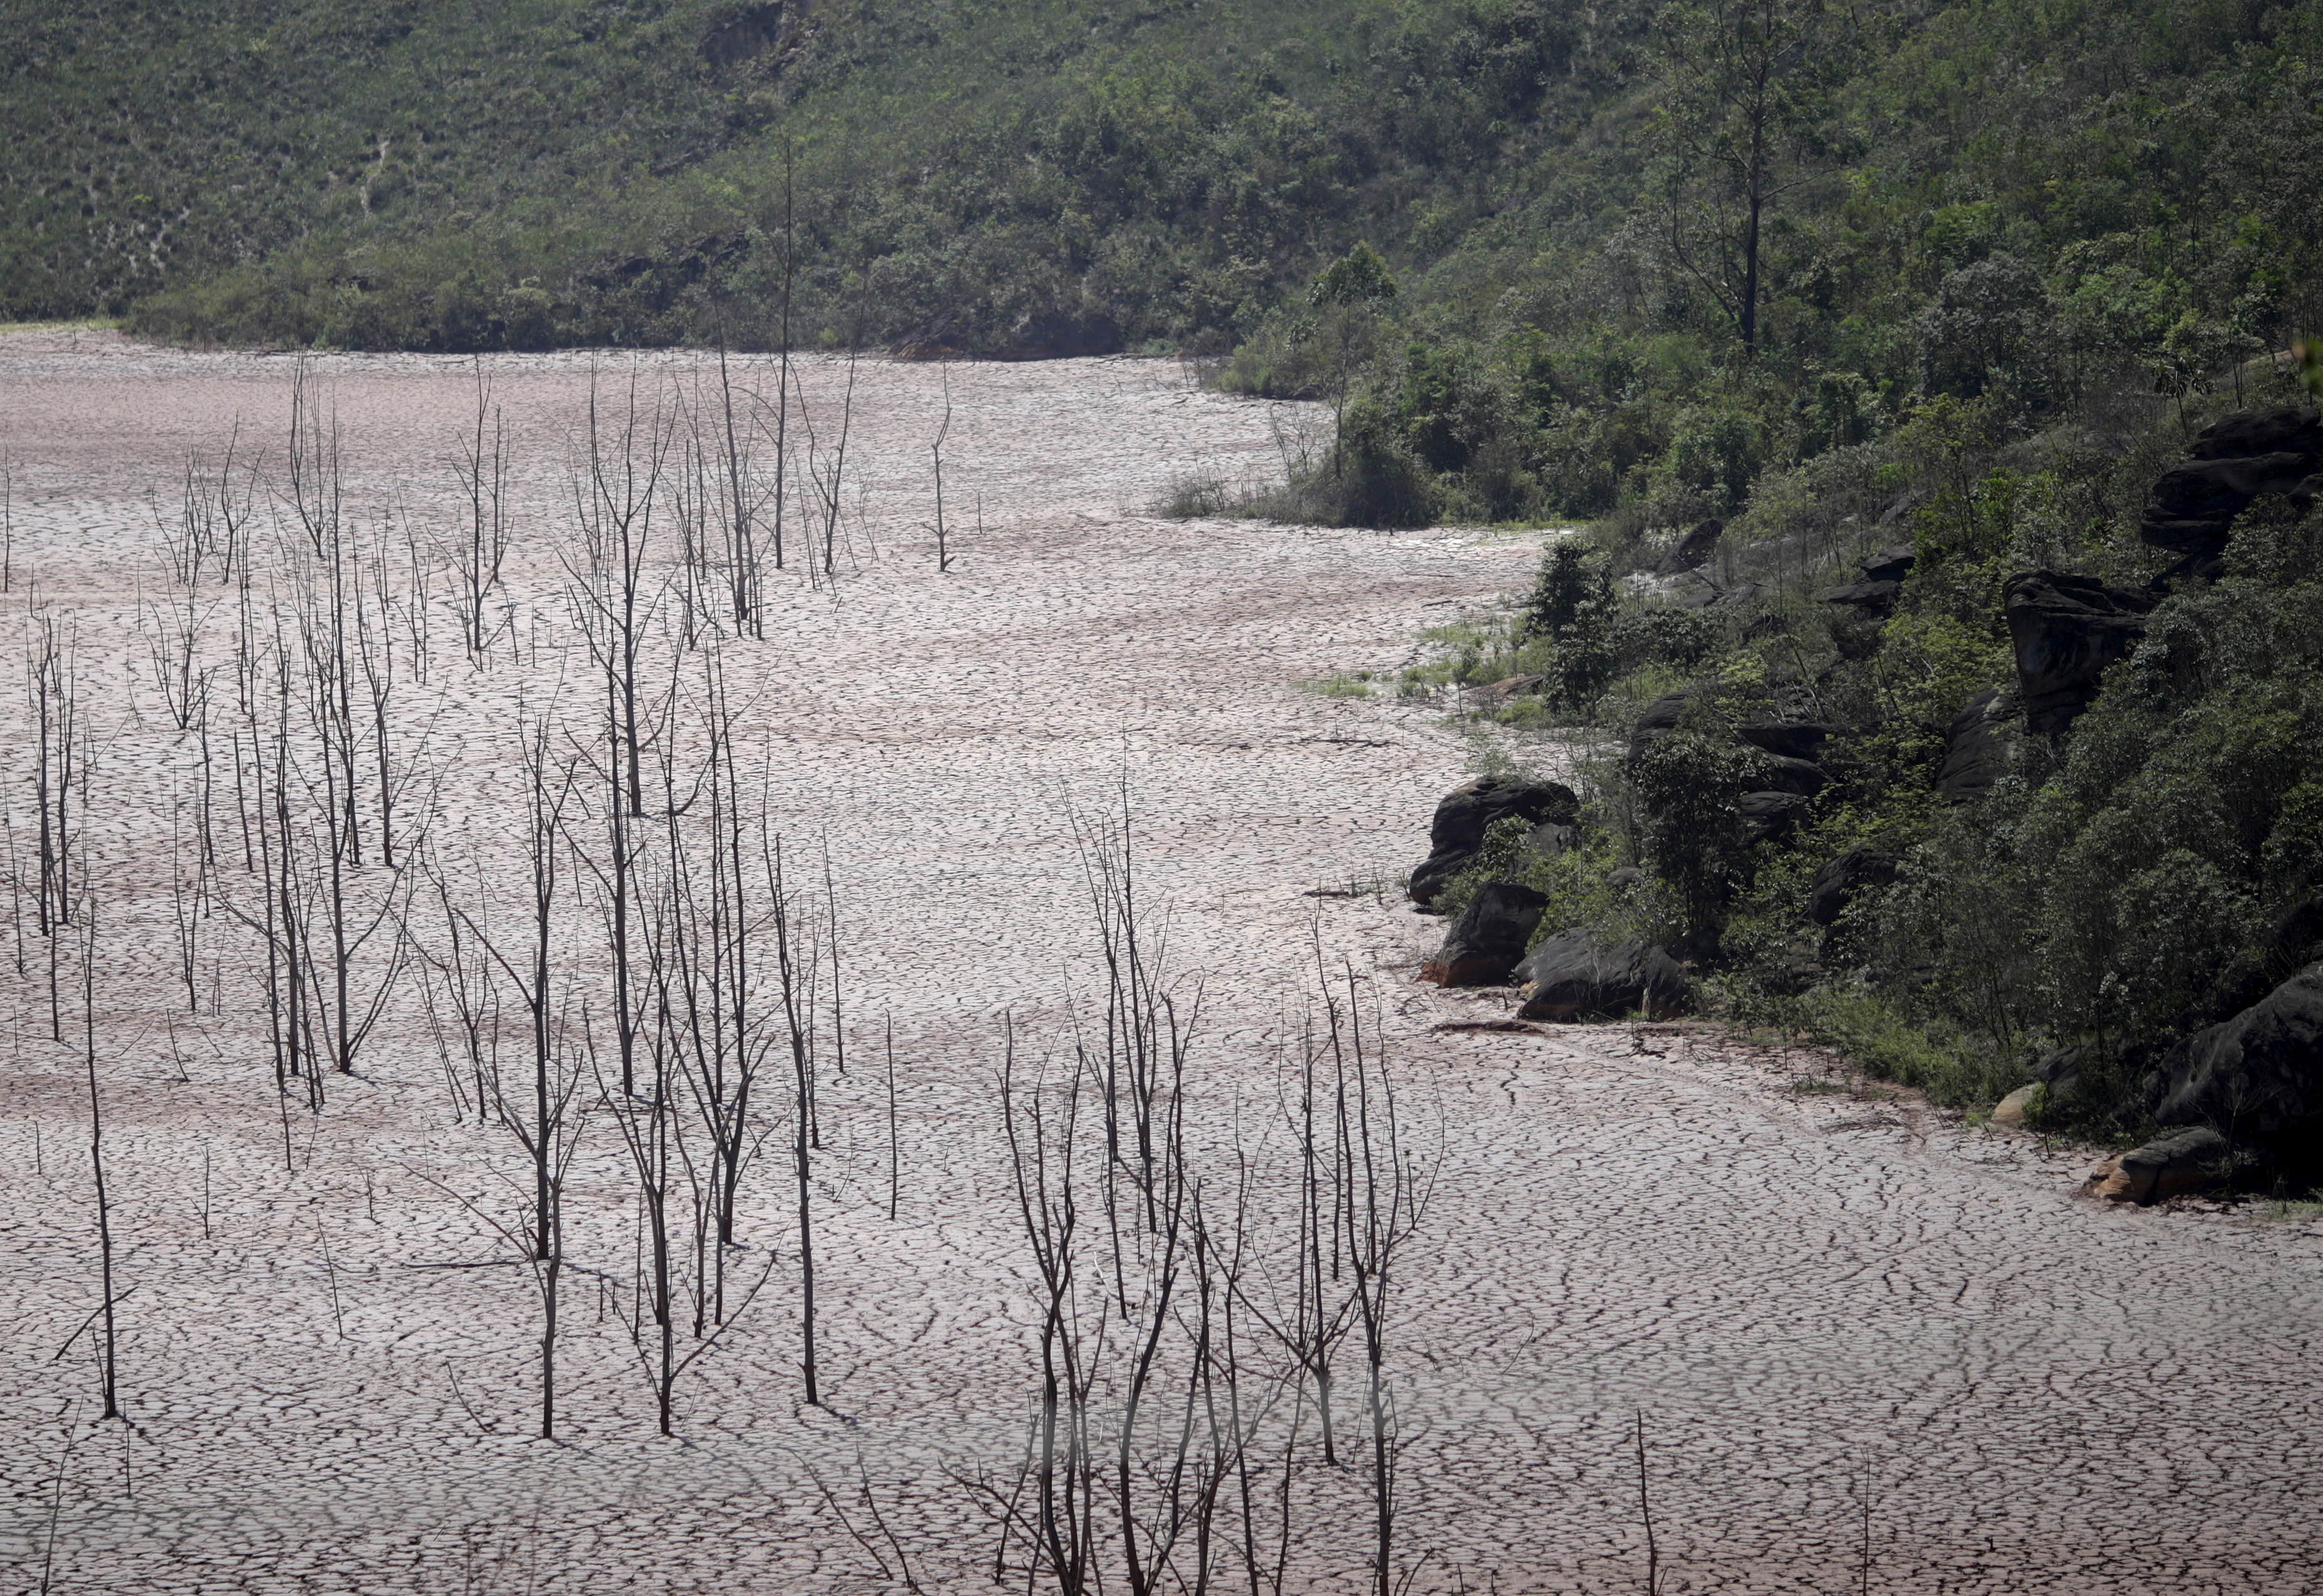 The banks of a dam owned by Vale SA and BHP Billiton Ltd that burst, is pictured in Mariana, Brazil, November 10, 2015. REUTERS/Ricardo Moraes/File Photo